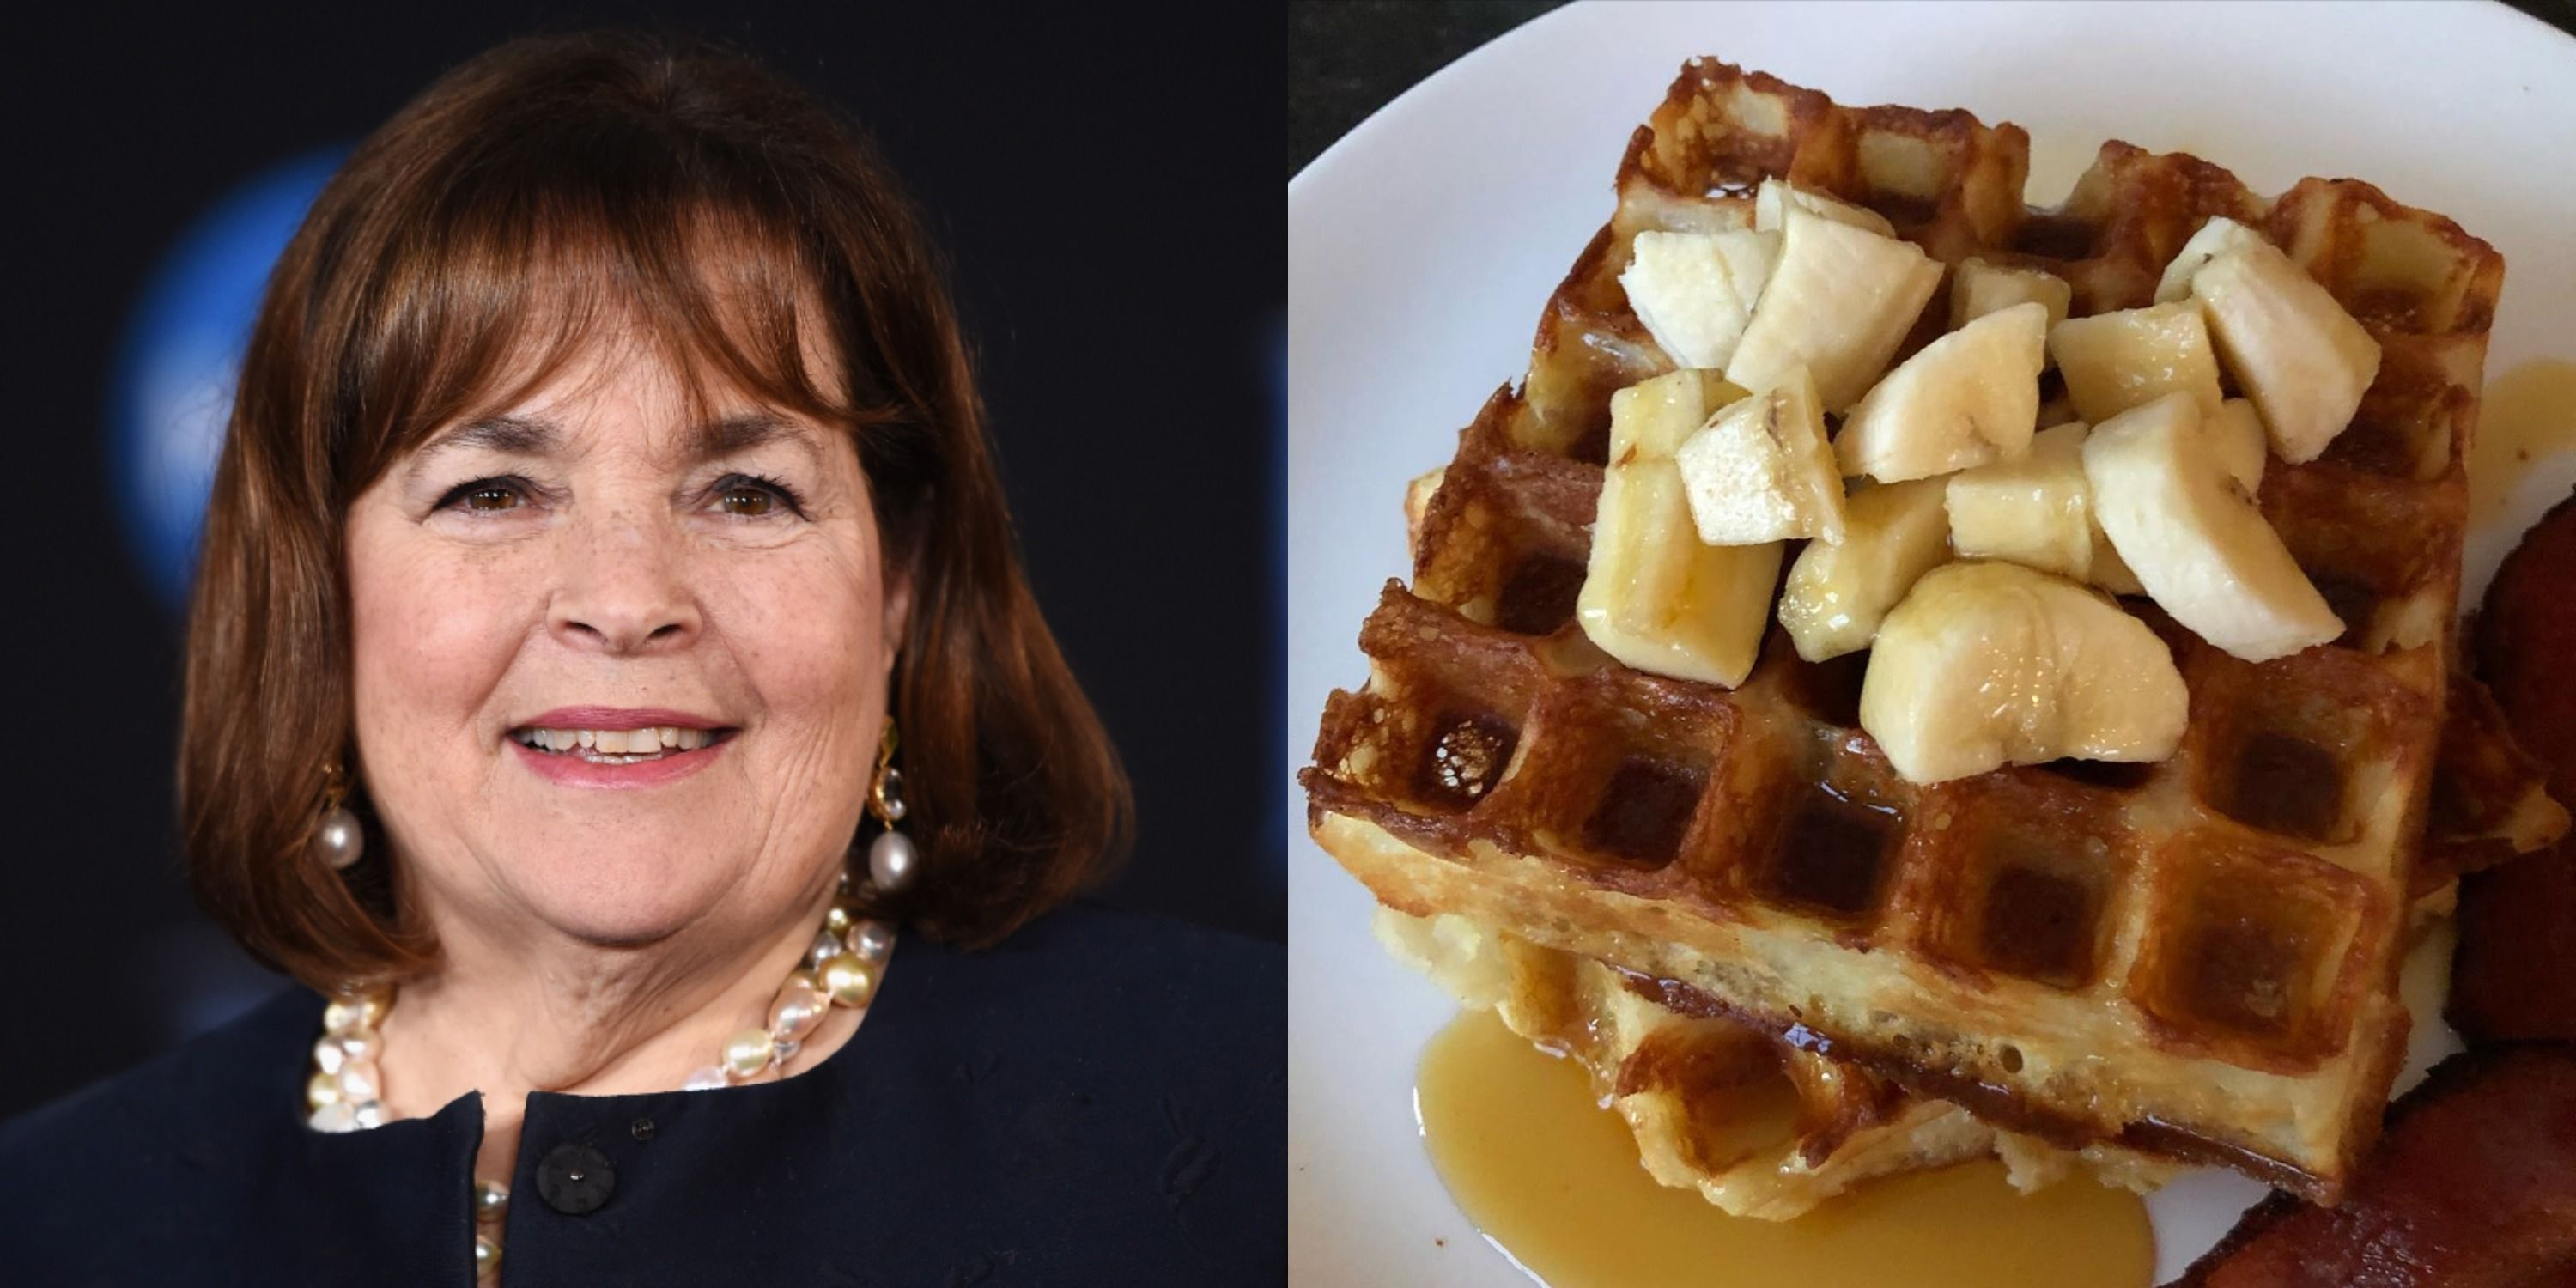 Ina Garten Shared The Recipes She's Making While Stuck At Home